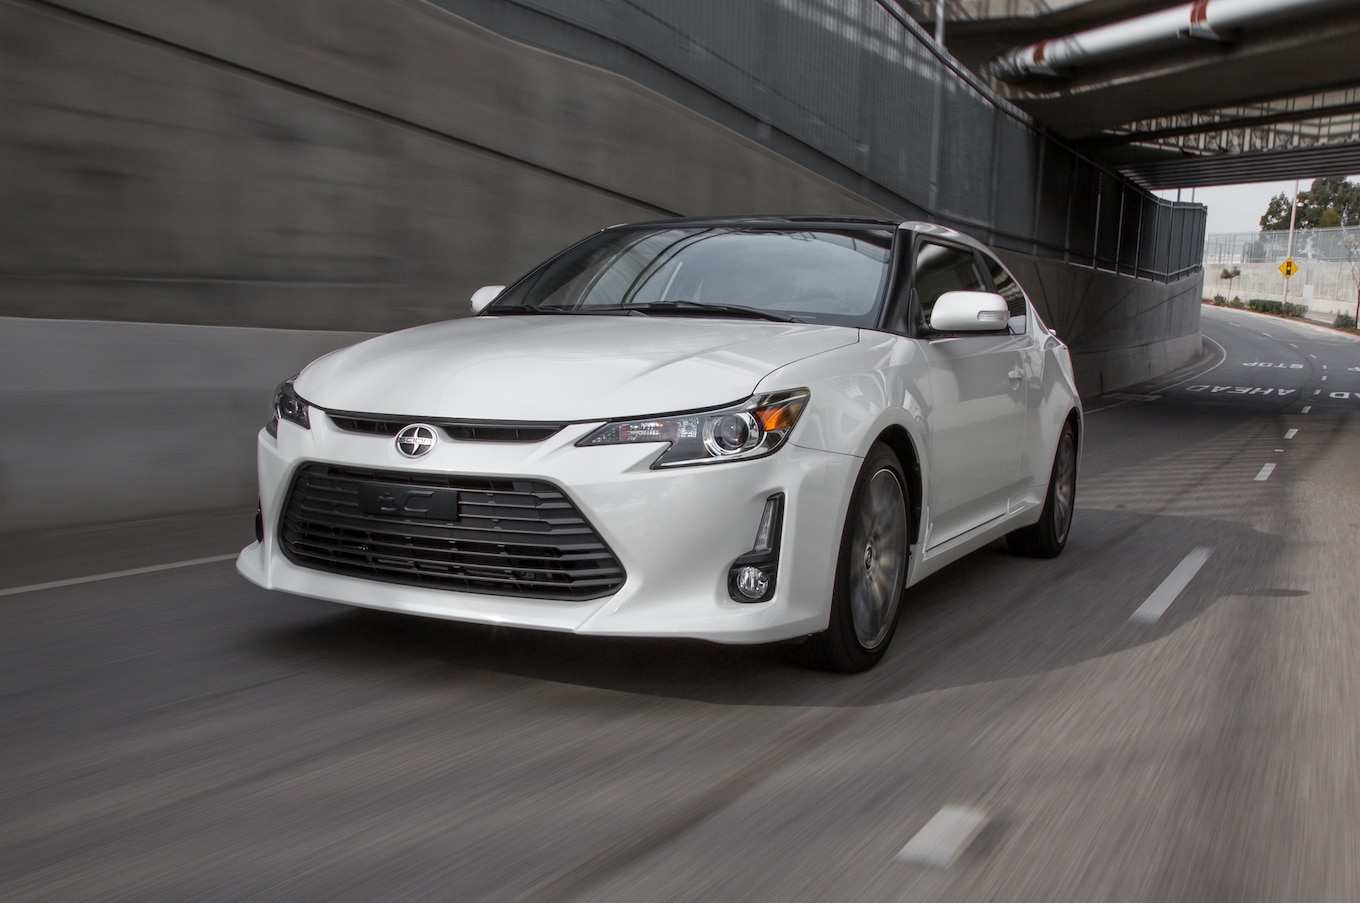 37 All New 2019 Scion TC Price Design And Review